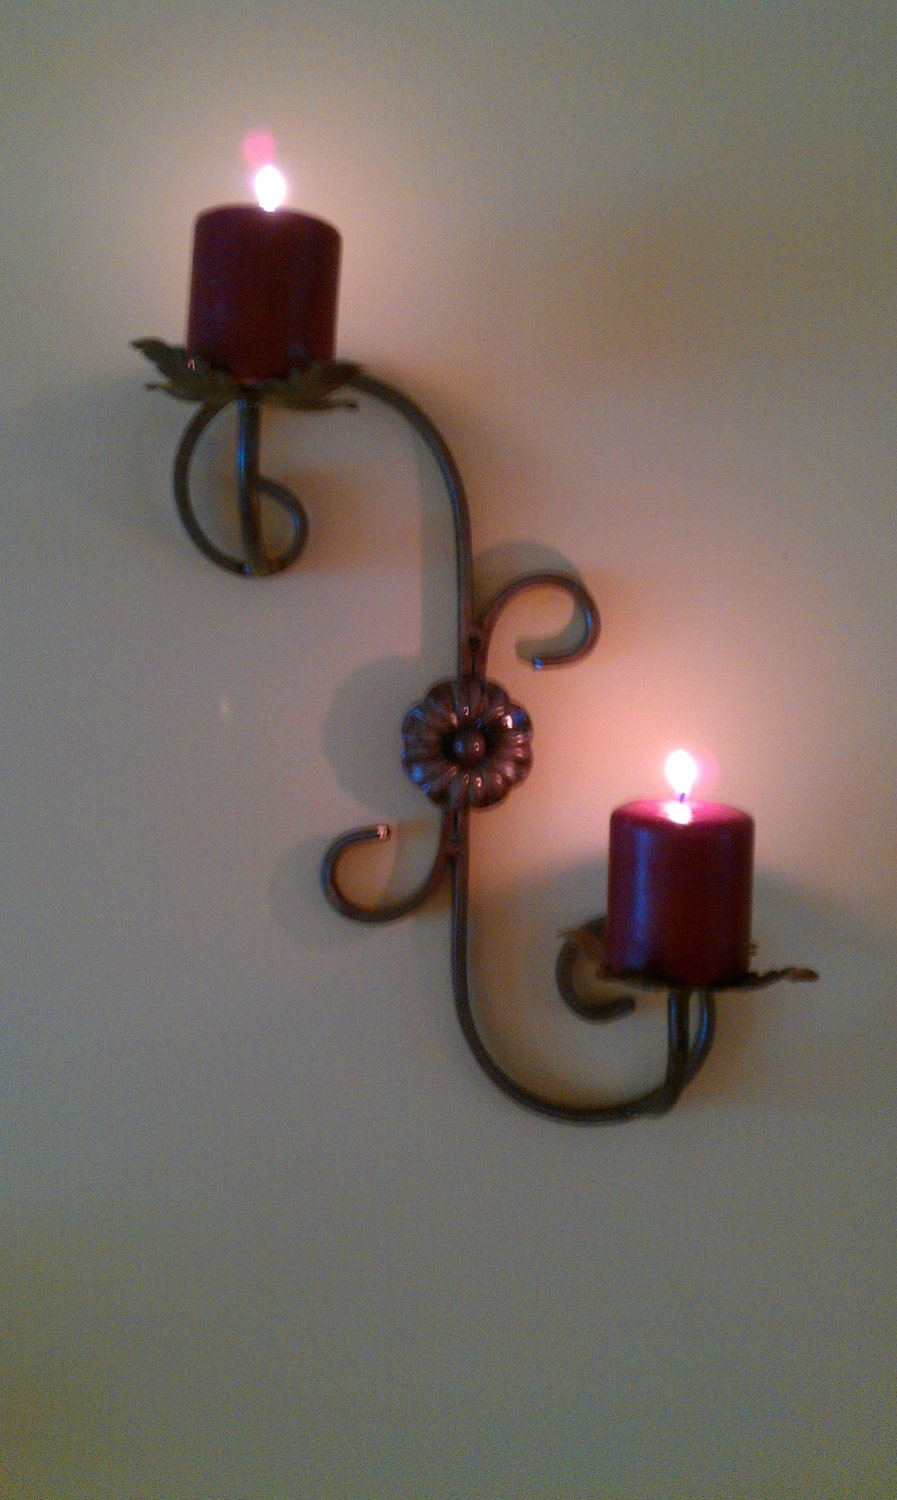 Wrought Iron Wall Decor Candle Holders : Wrought iron wall mounted candle holder